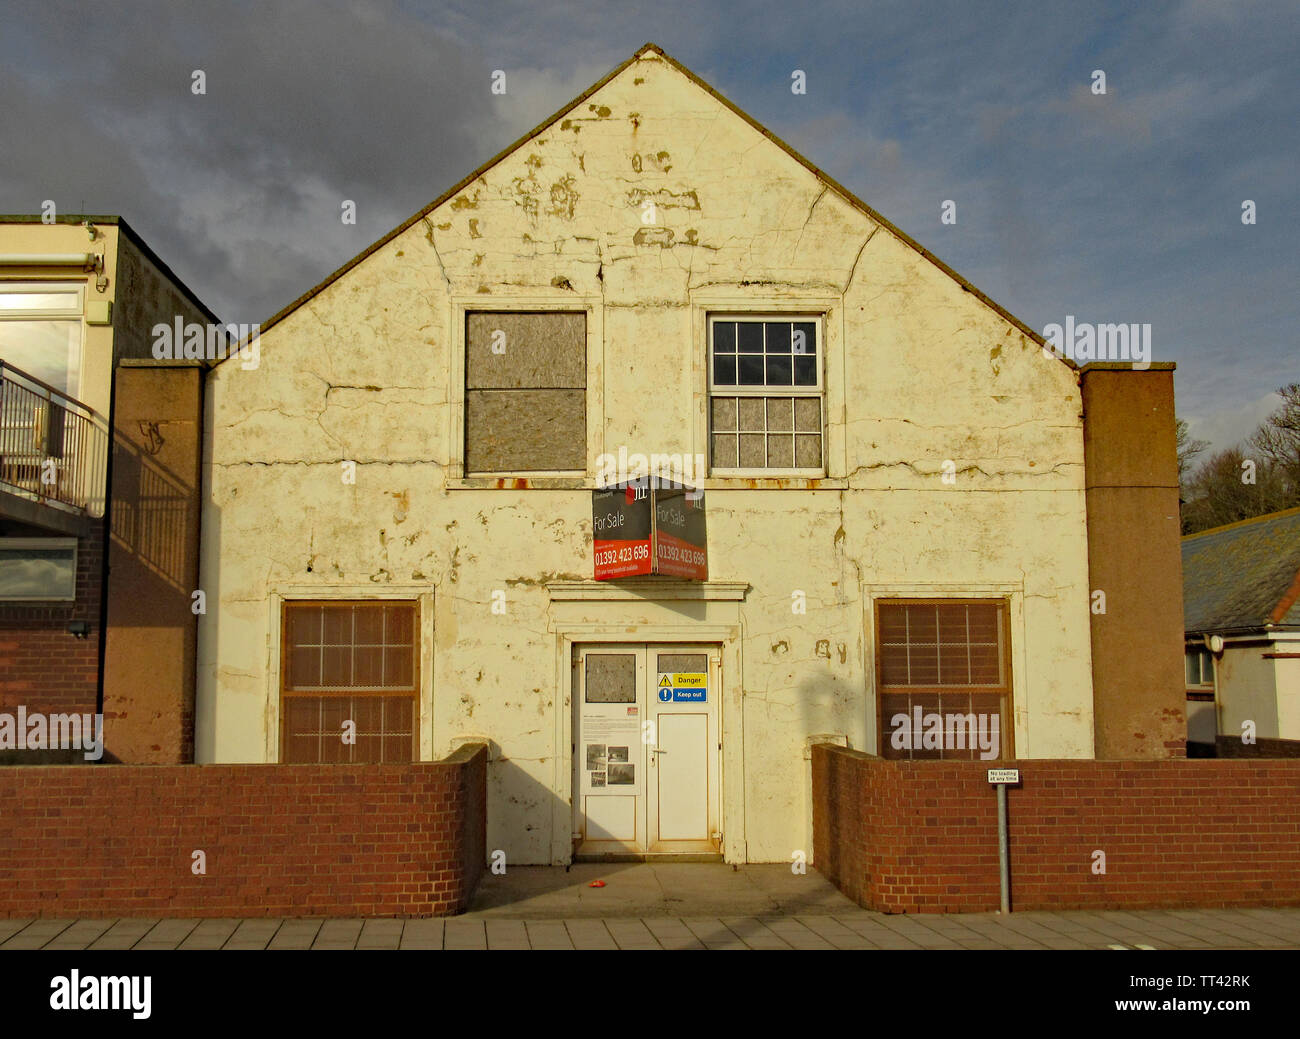 The drill hall at the eastern end of Sidmouth Esplanade. A building which has been deteriorating for many years. - Stock Image